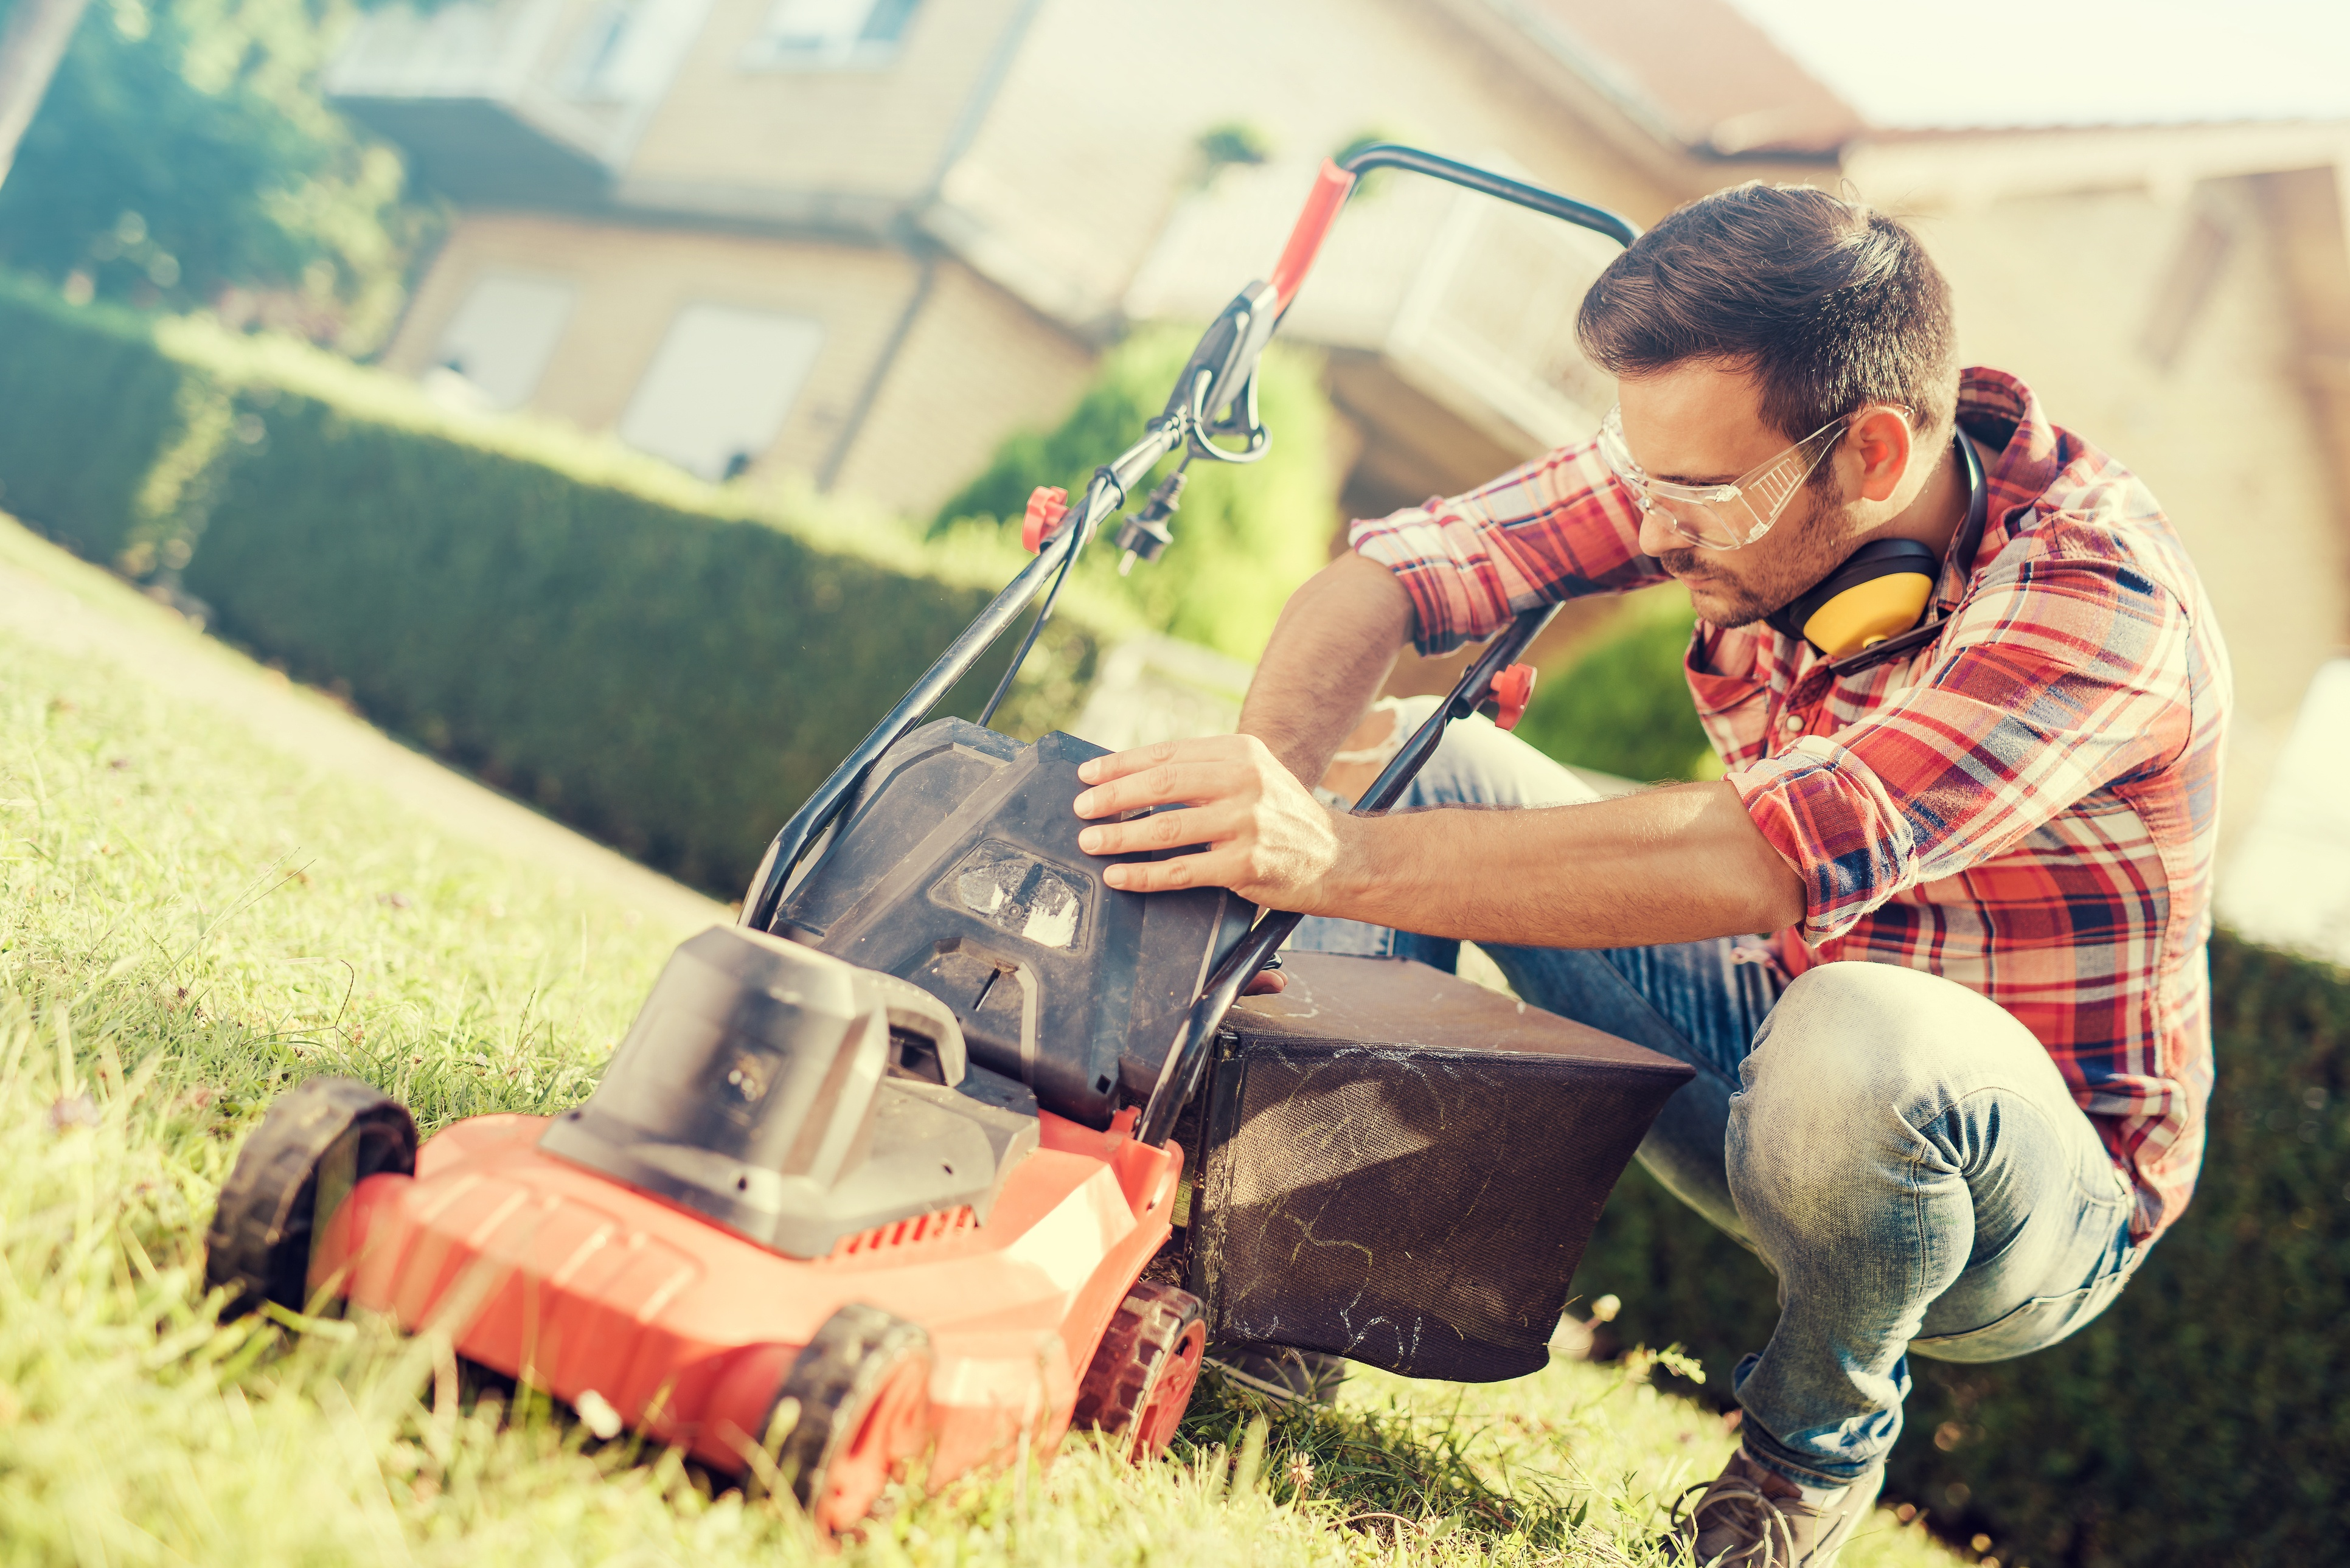 Clean Your Lawn Mower